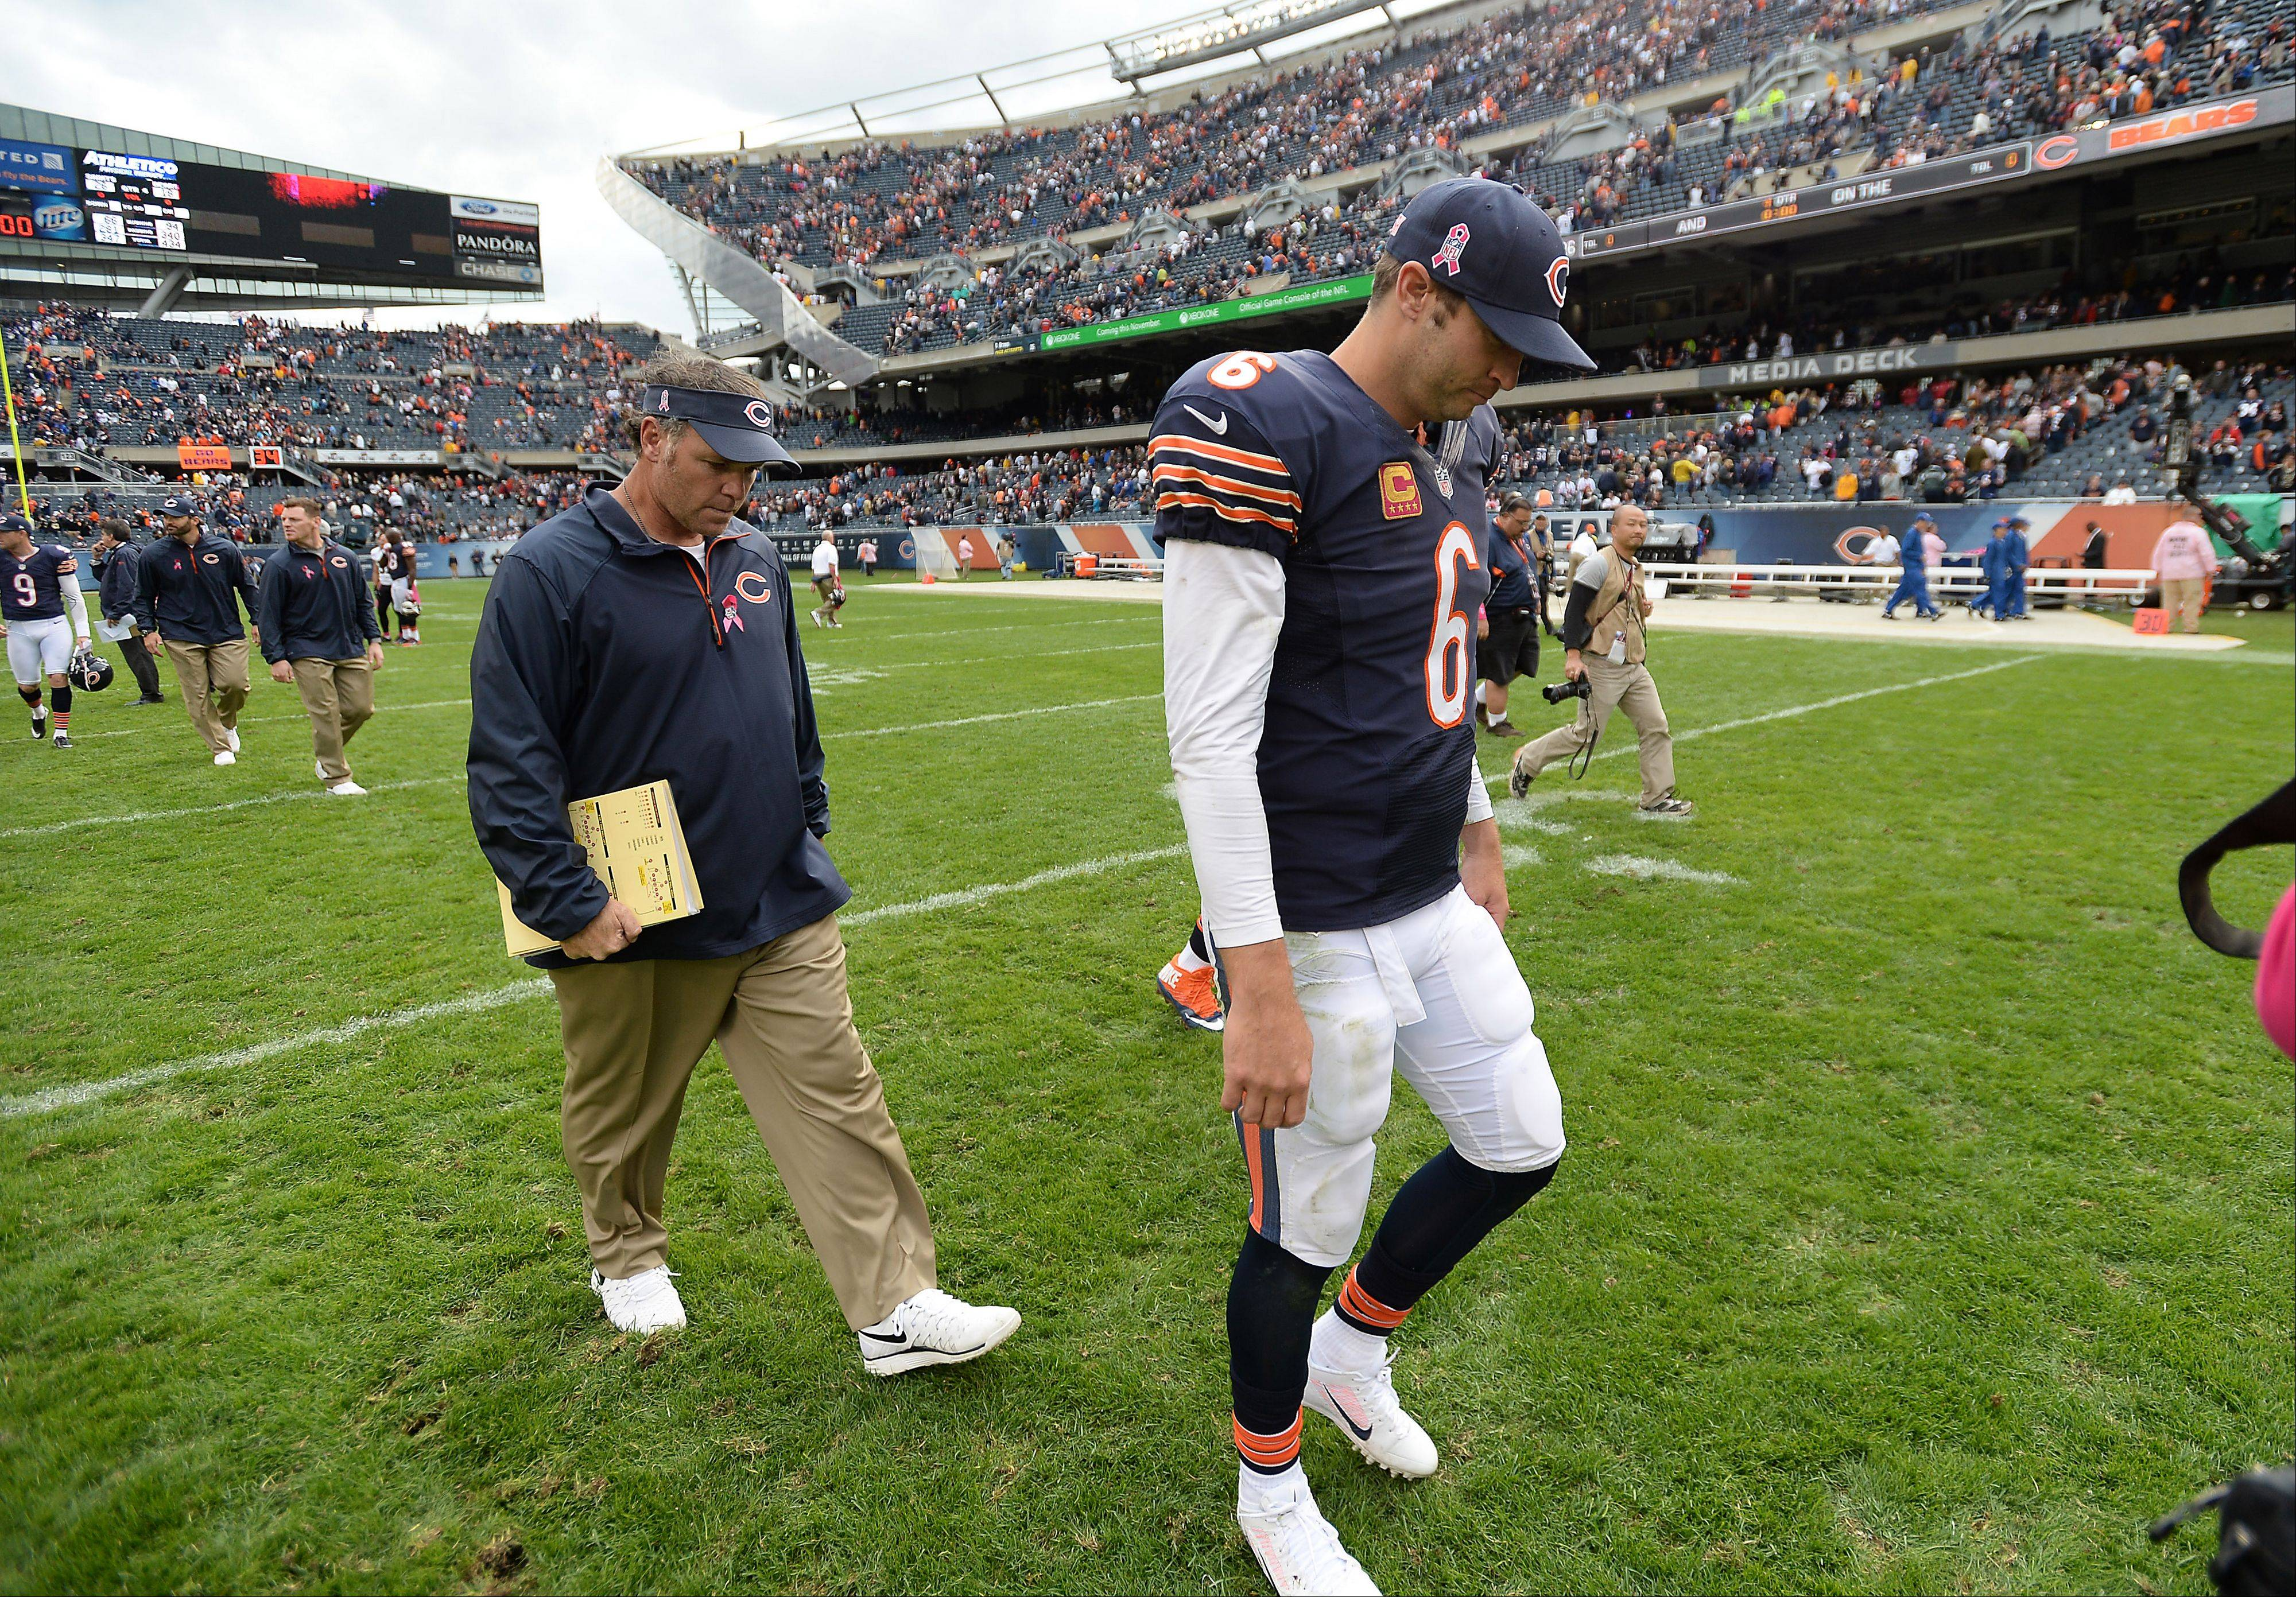 Bears quarterback Jay Cutler walks off the field at the end of the end as the Bears loss 26-18 at Soldier Field.